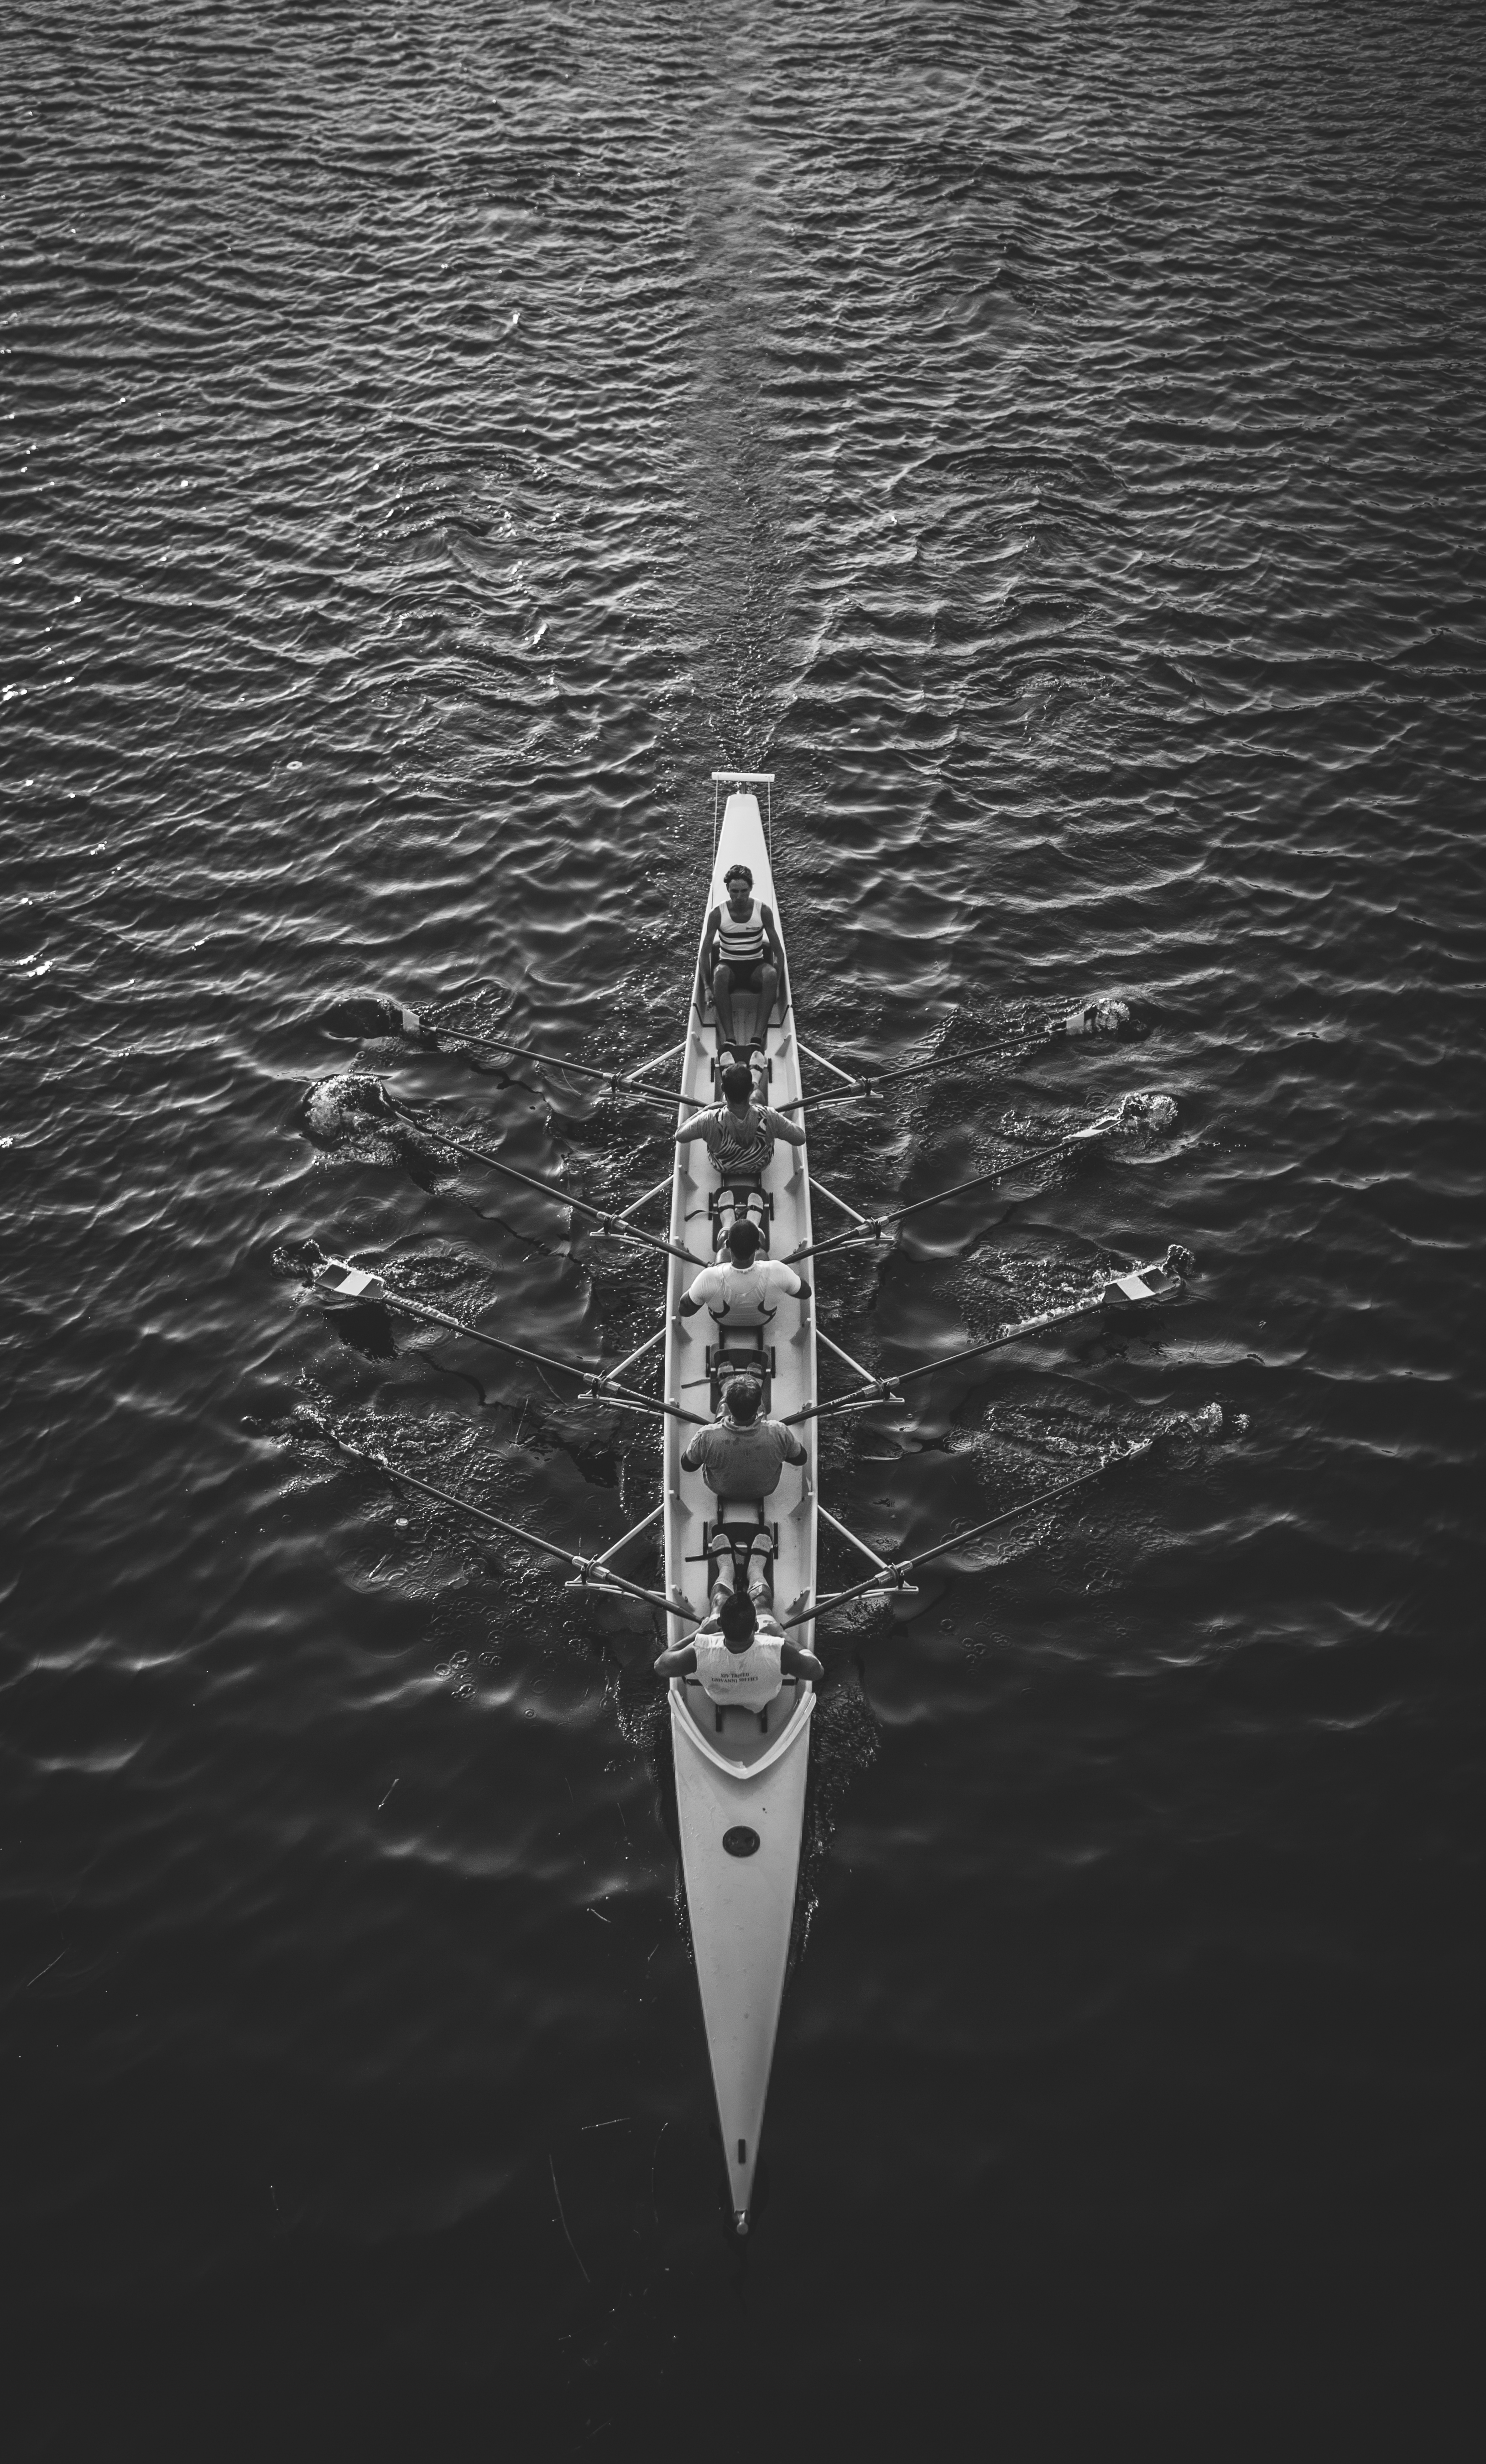 Team Rowing Together